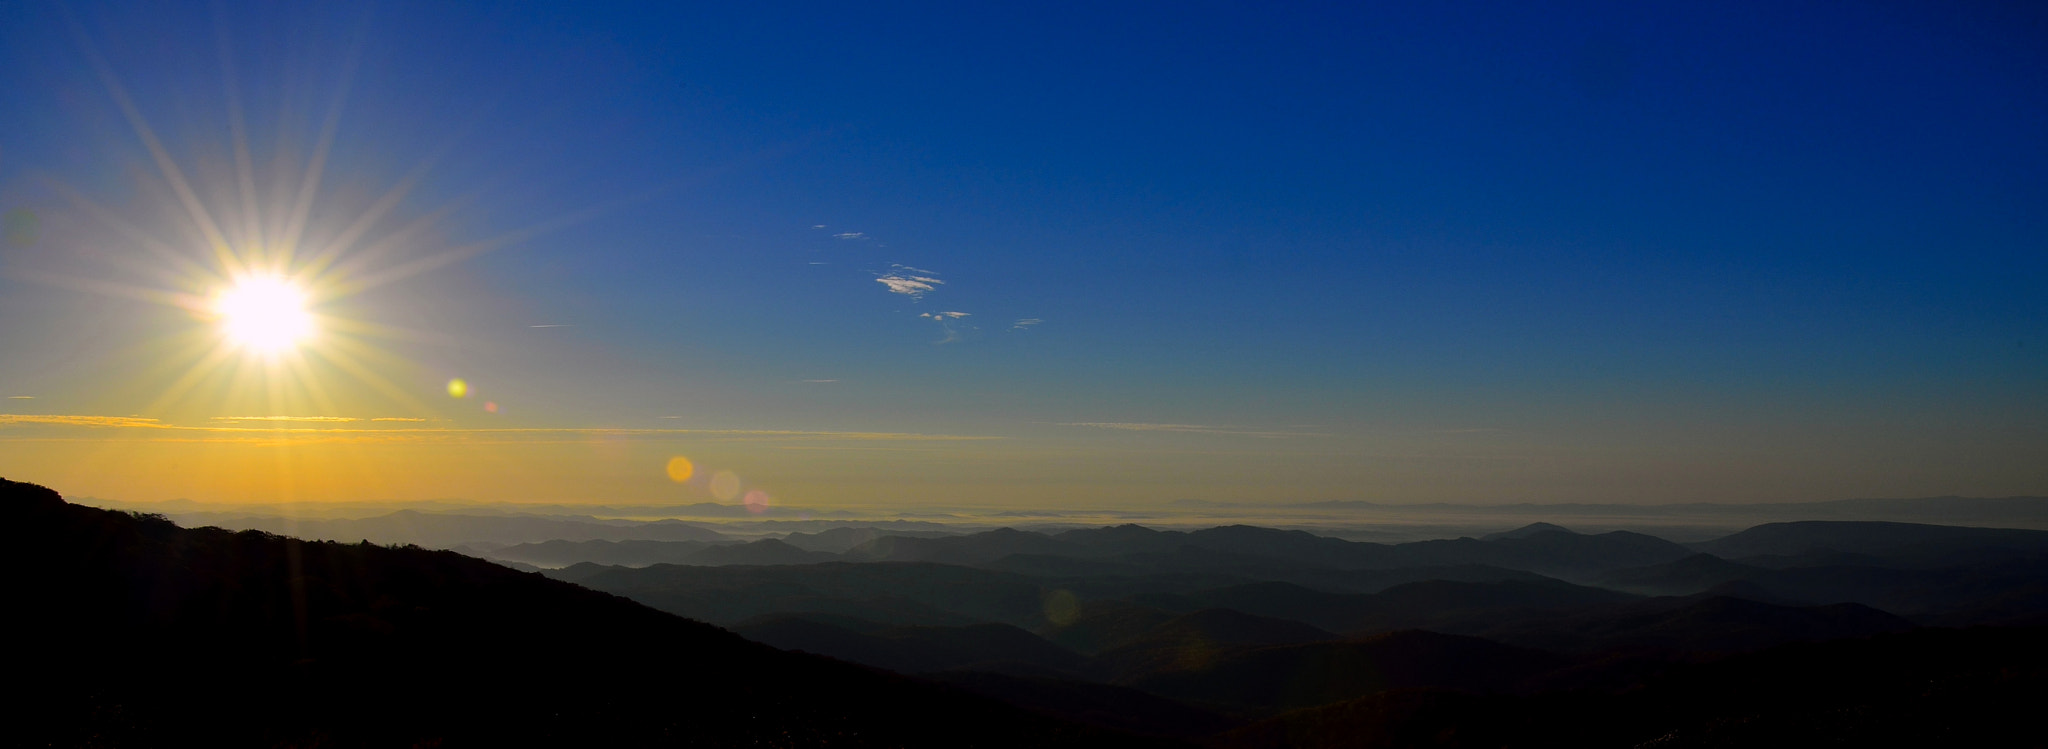 Photograph Sunset In The Blue Ridge Mountains by Joseph Broyles on 500px